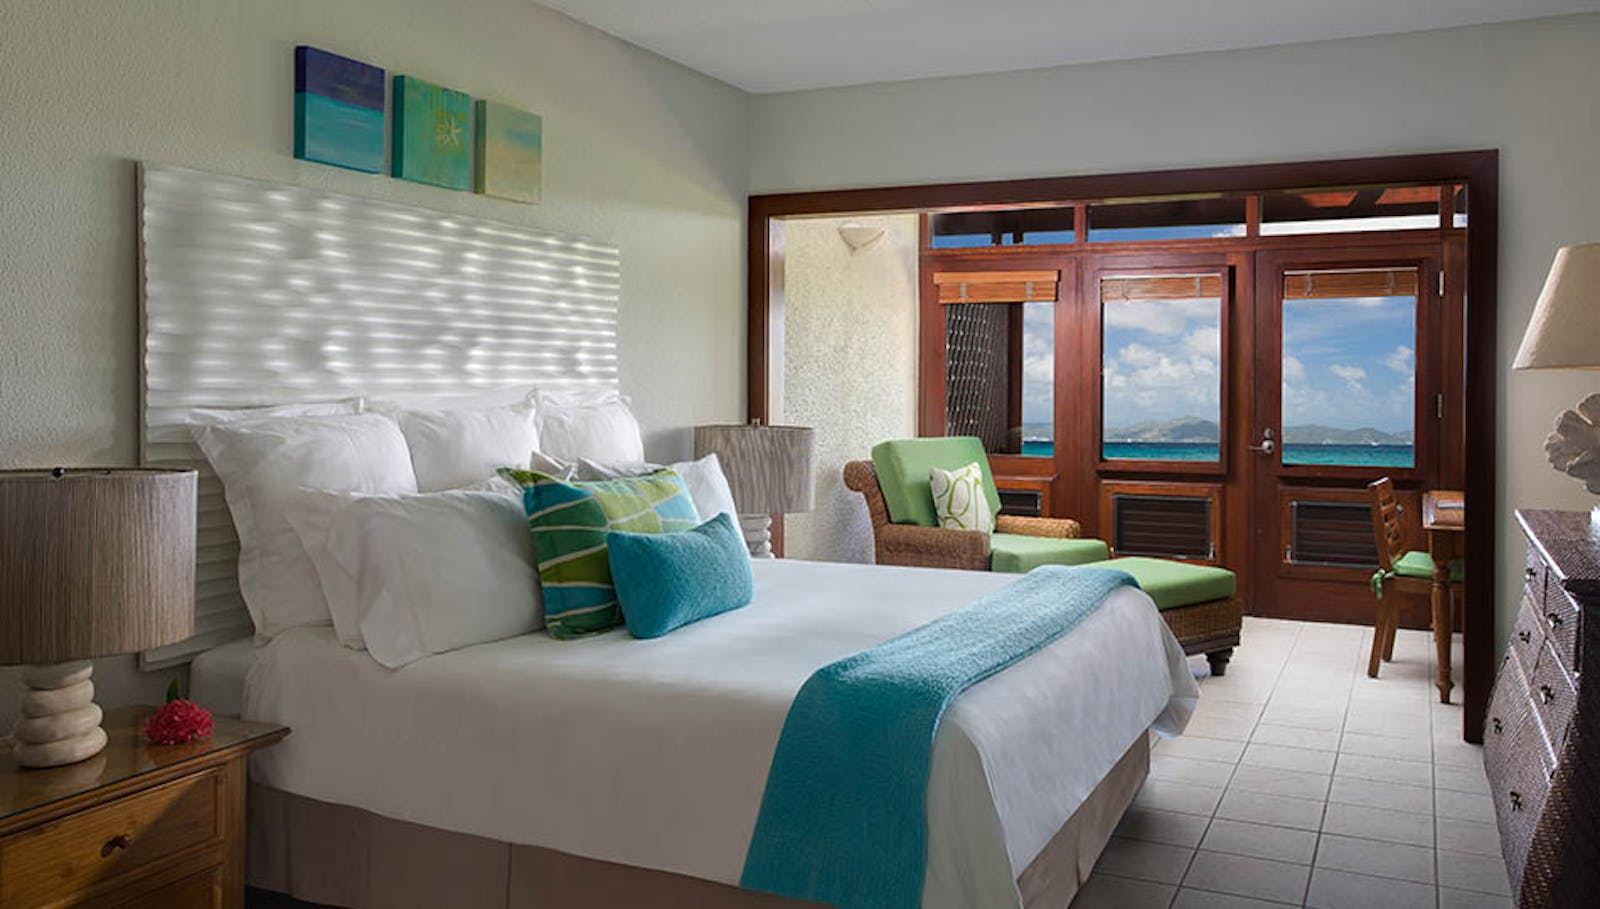 Ocean view room at Peter Island Resort & Spa, British Virgin Islands